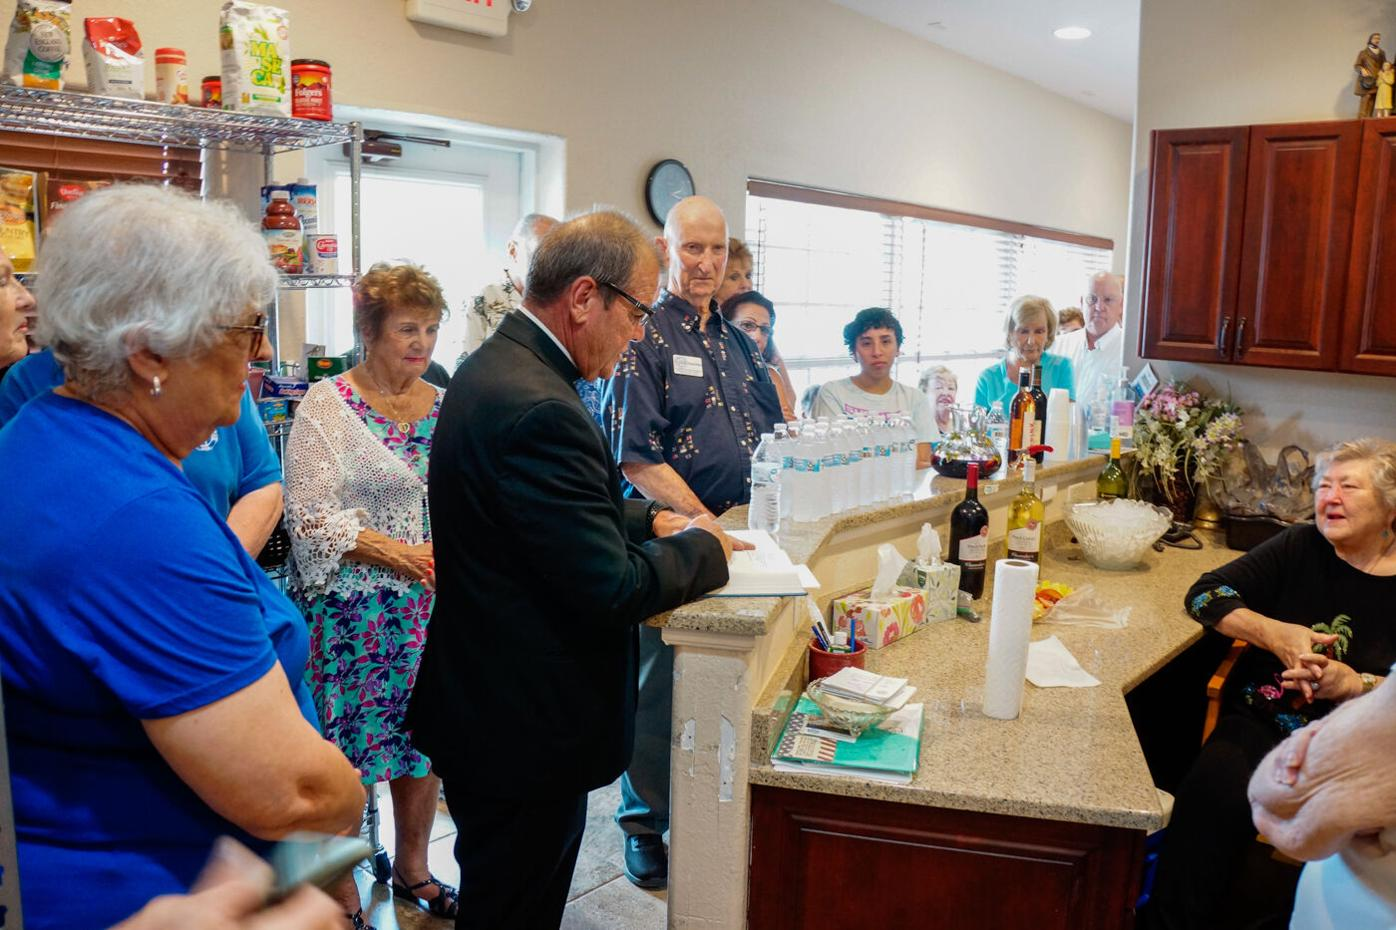 Local food pantry reopens after flood